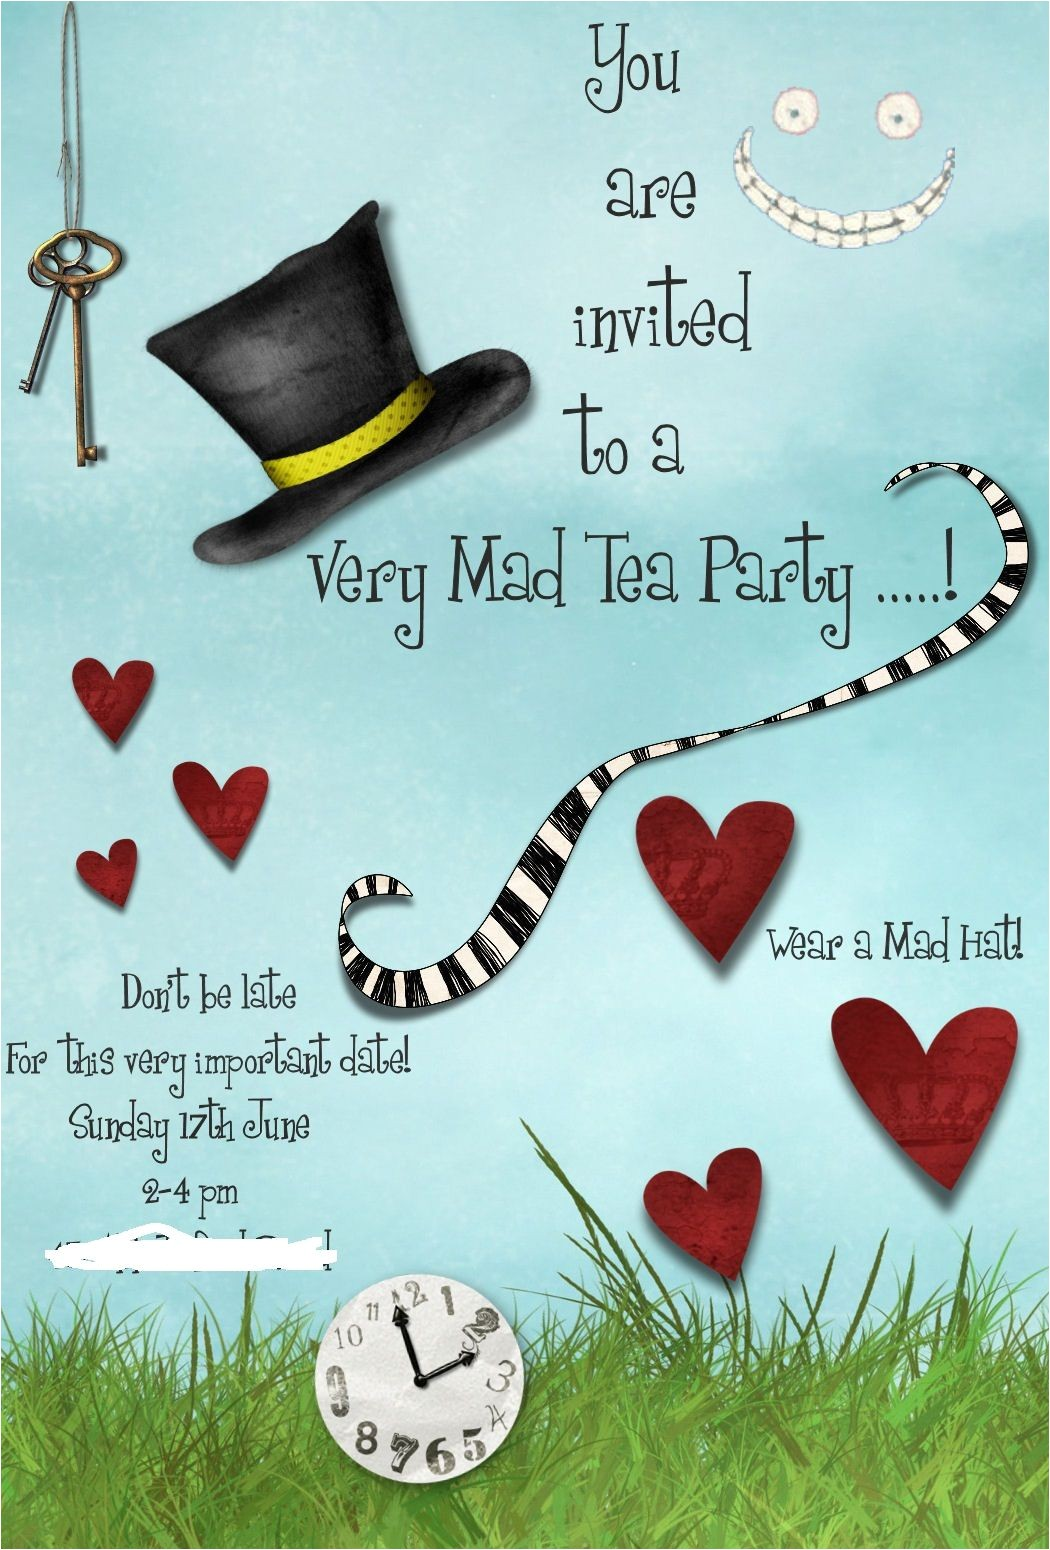 Mad Hatters Tea Party Invitations Free Templates Mad Hatters Tea Party Invitation Template Free